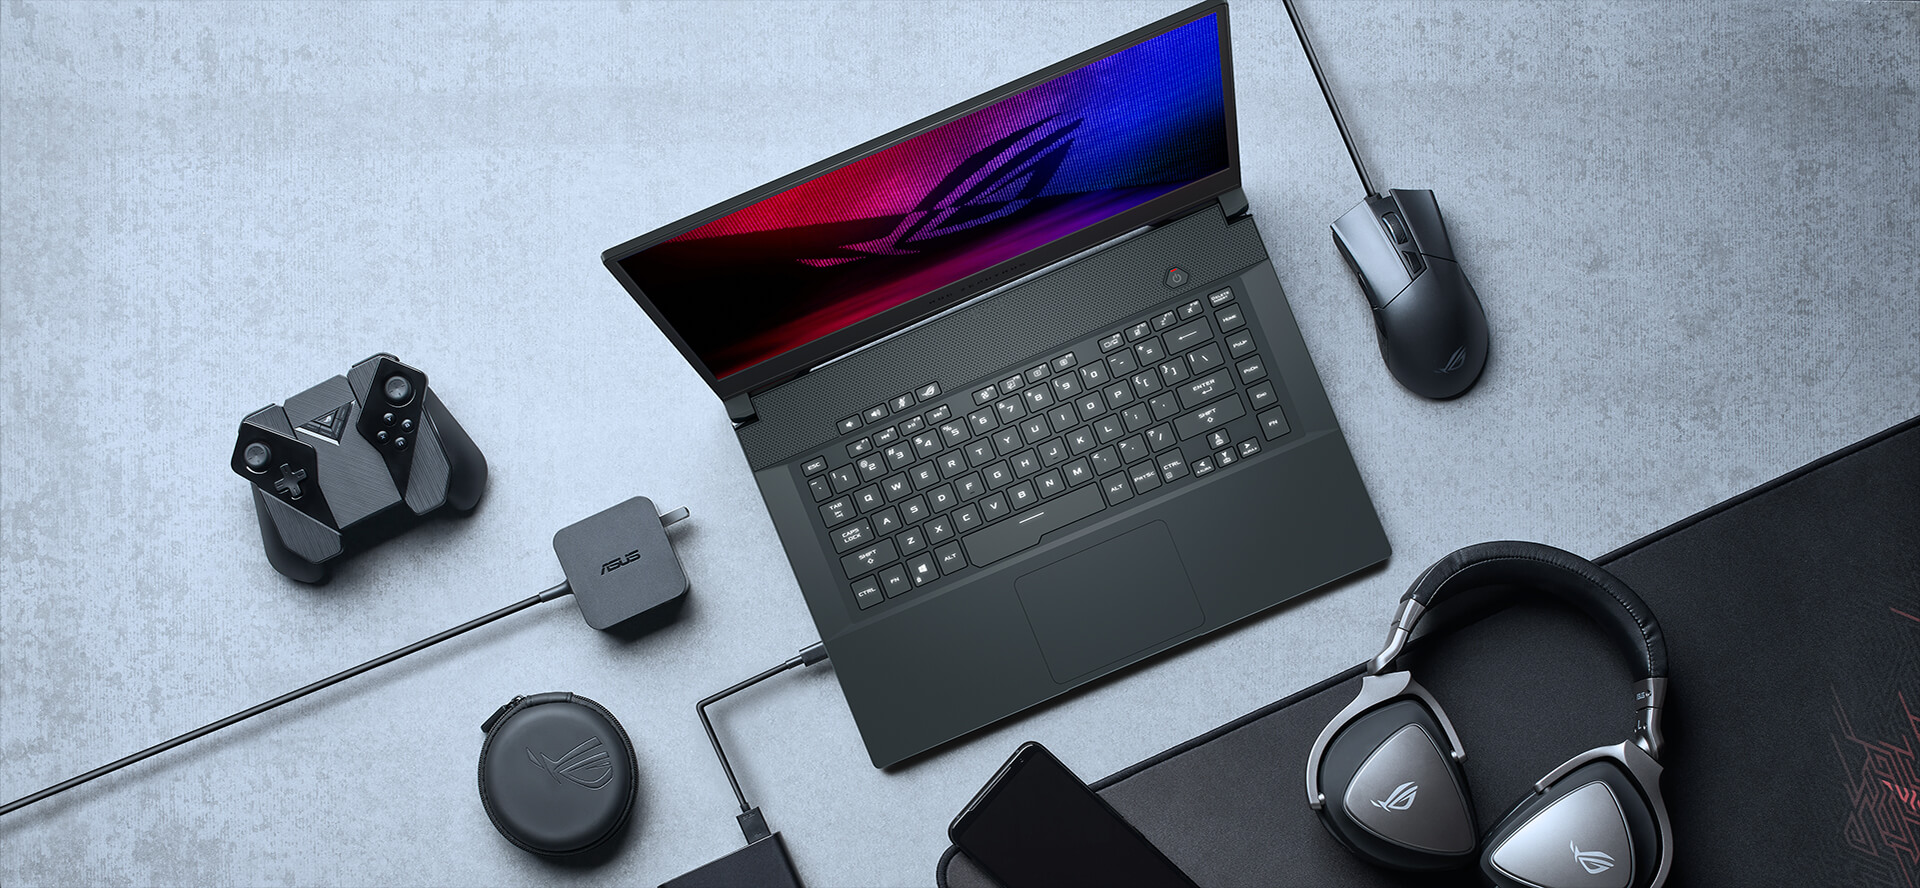 ASUS's High-End ROG Zephyrus M16 Gaming Laptops With Intel Tiger Lake-H Core i9 CPUs & NVIDIA GeForce RTX 30 GPUs Listed